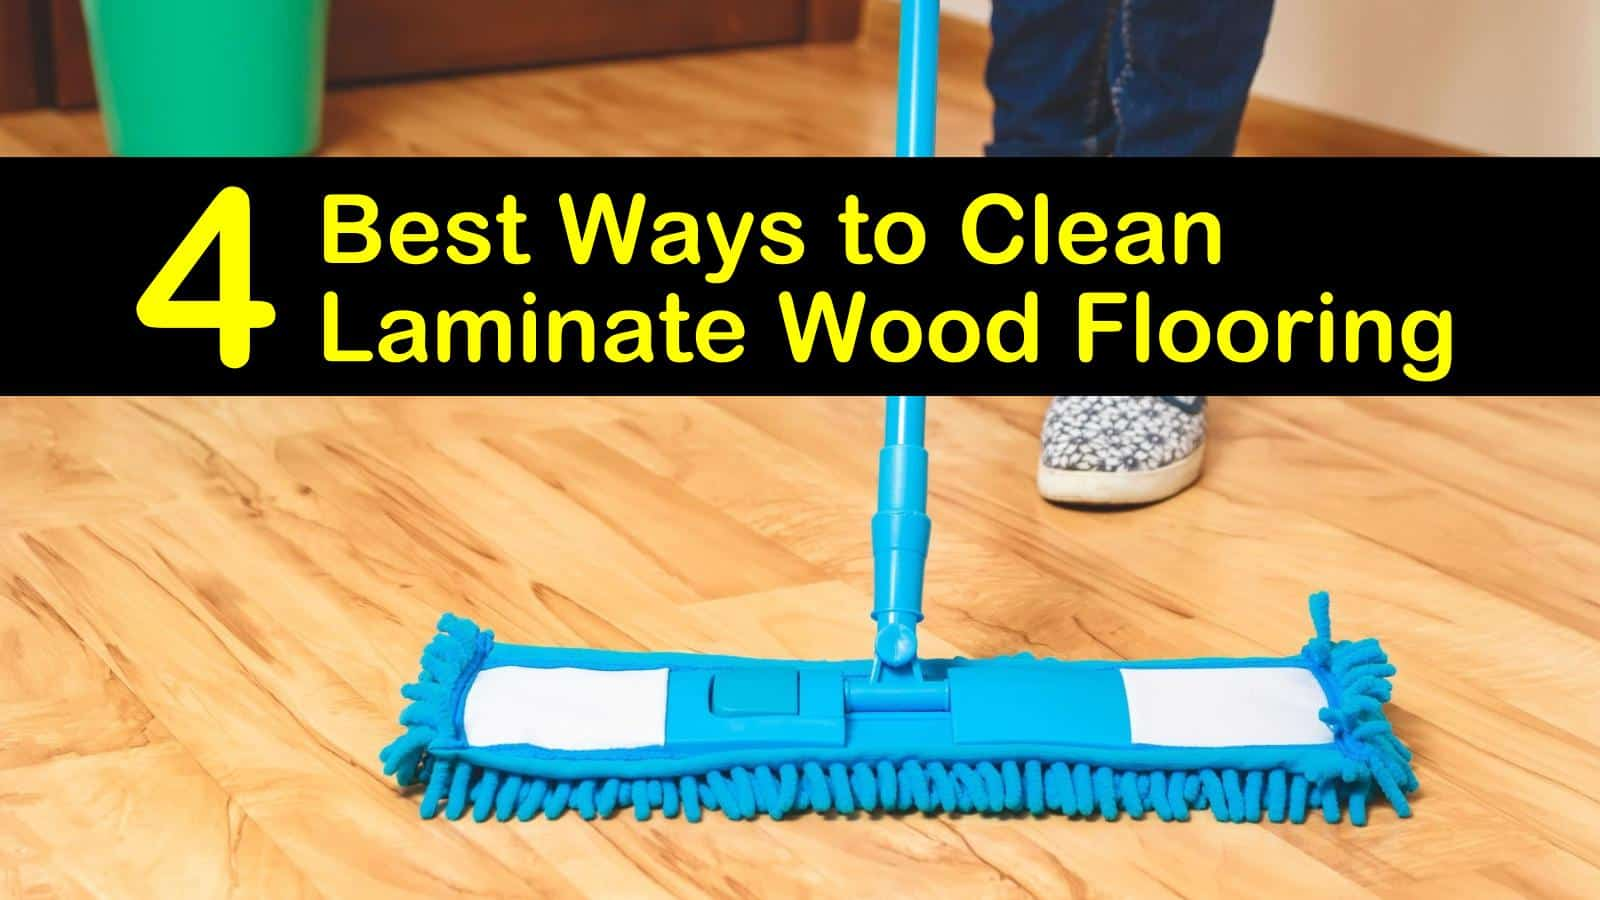 The 4 Best Ways To Clean Laminate Wood Flooring